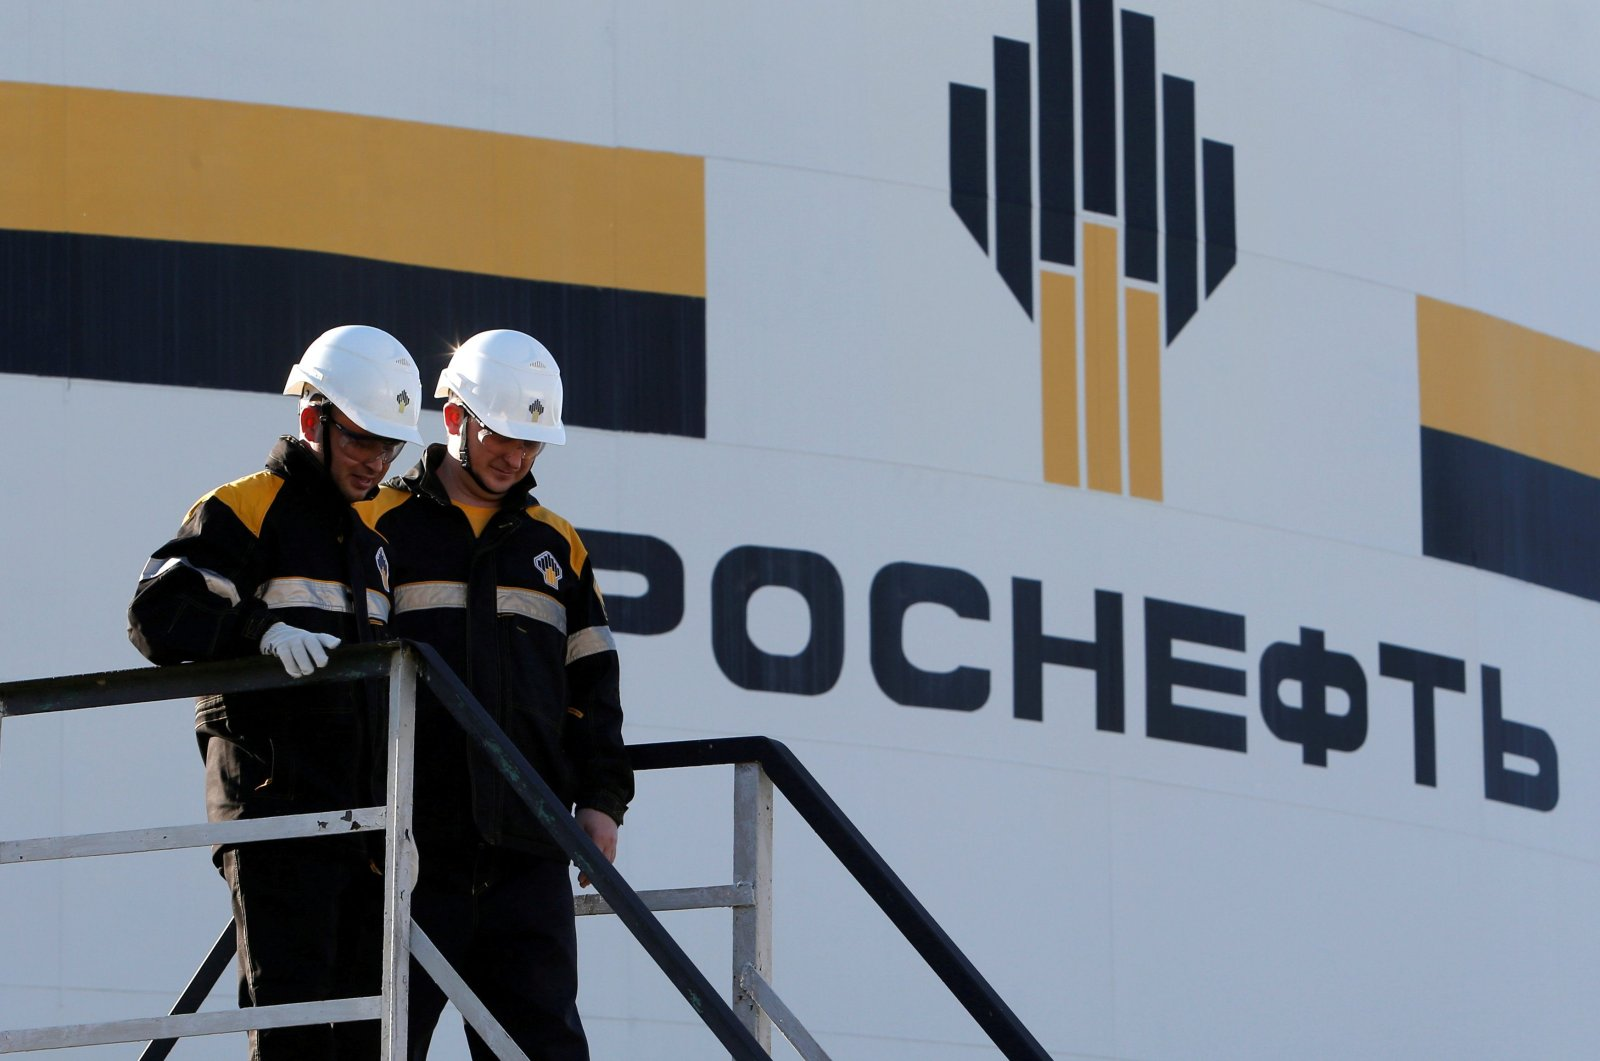 Workers stand next to logo of Russia's Rosneft oil company at central processing facility of Rosneftowned Priobskoye oil field outside Nefteyugansk, Russia, August 4, 2016. (REUTERS Photo)